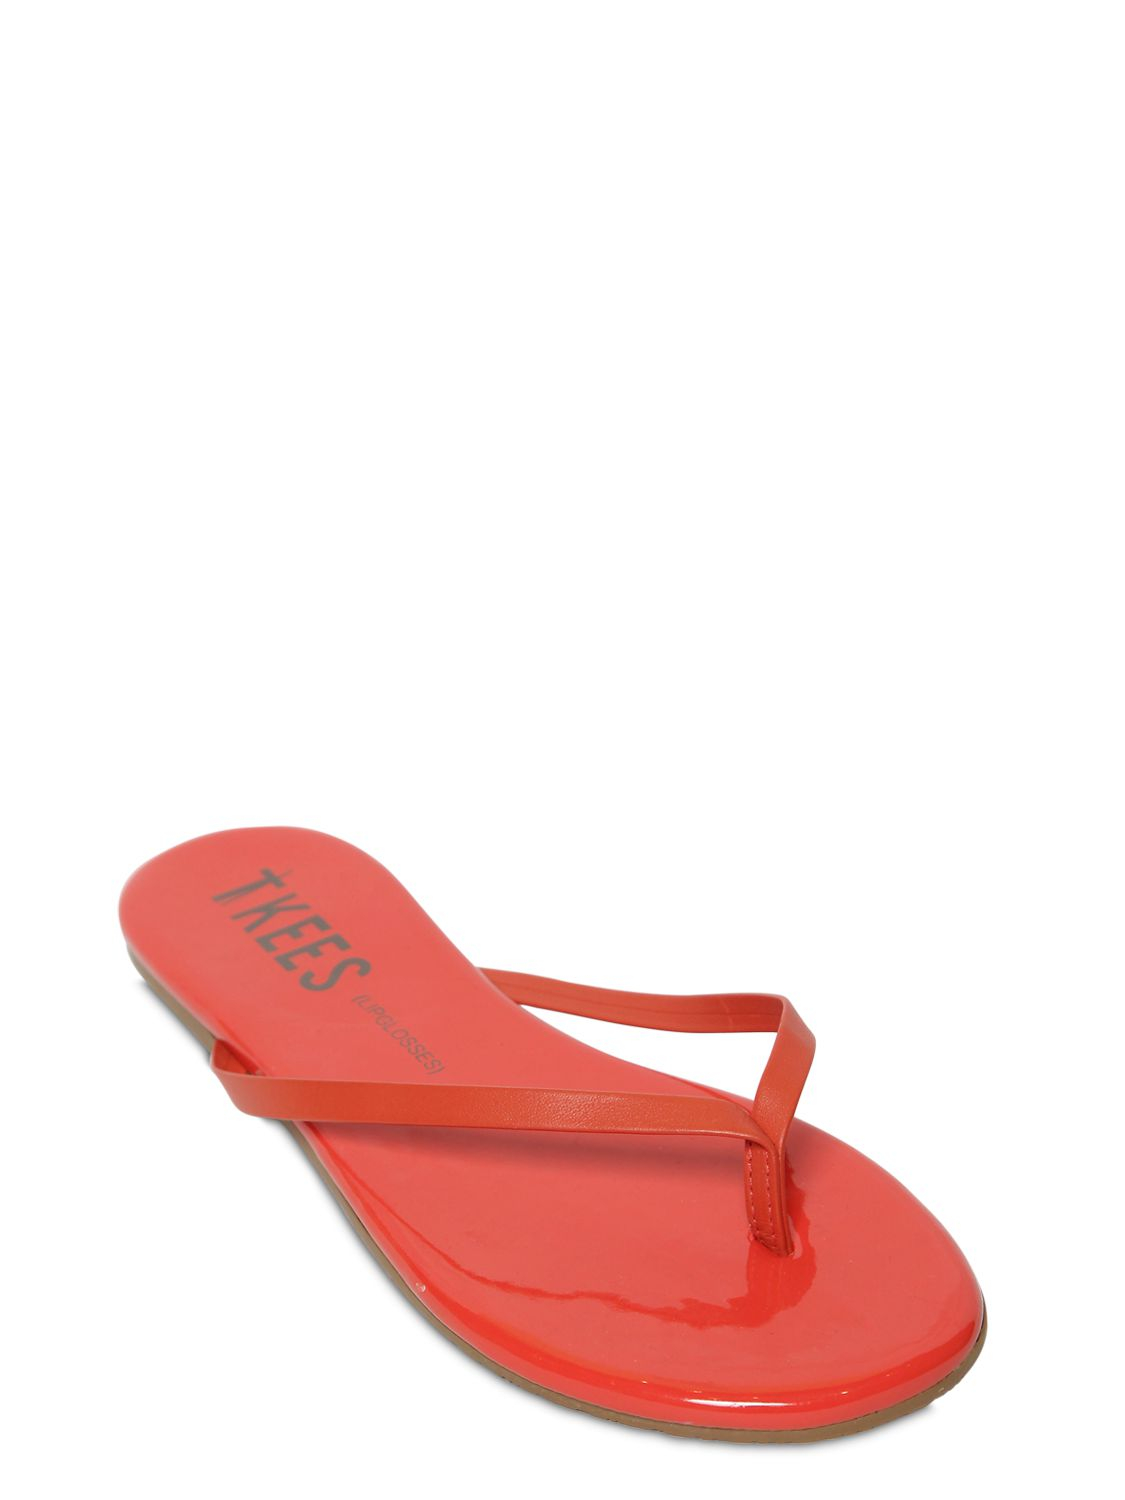 431347cb1 Lyst - TKEES Patent Leather Flip Flops in Red